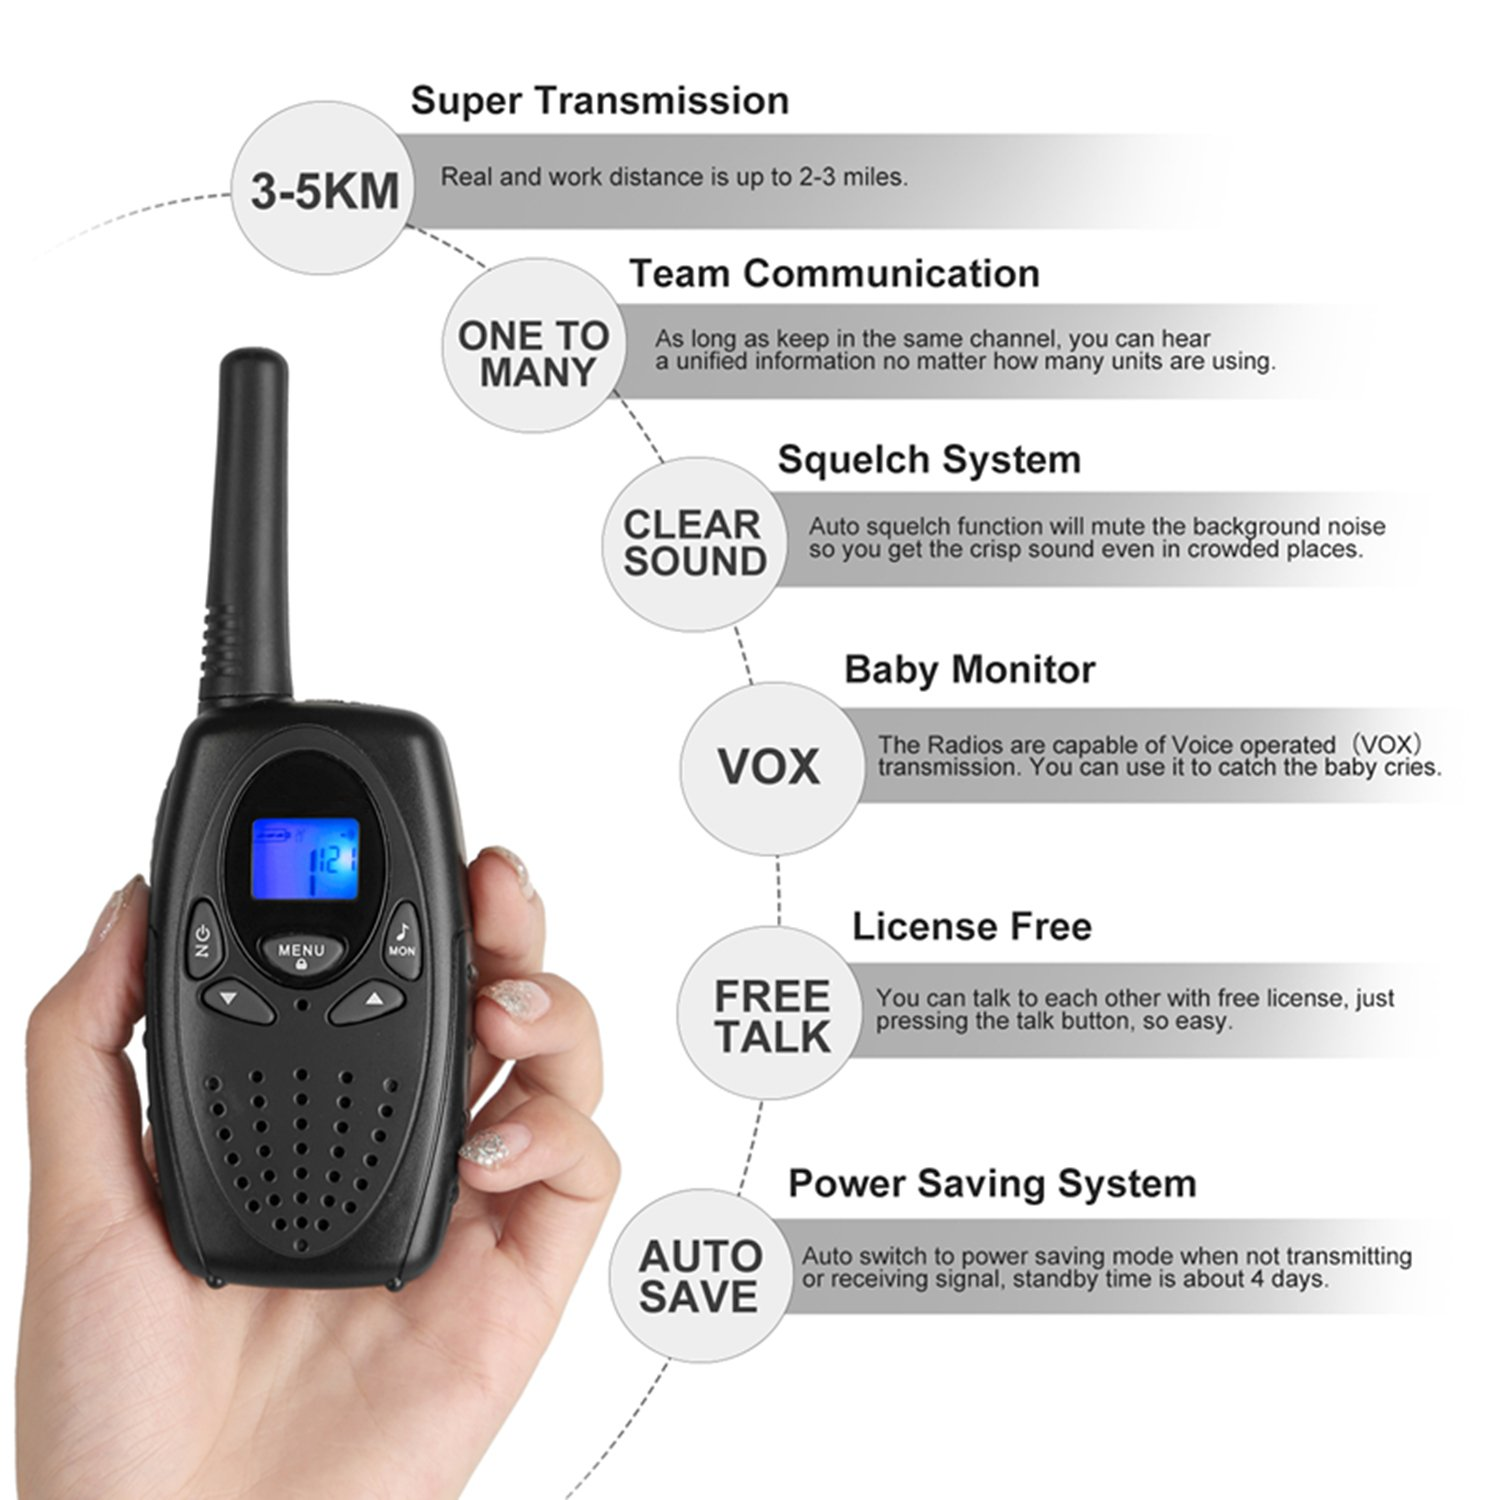 Walkie Talkies for Adults, Topsung M880 FRS Two Way Radio Long Range with VOX Belt Clip/Hand Held Walky Talky with 22 Channel 3 Mile for Family Home Cruise Ship Camping Hiking (Black 2 in 1) by Topsung (Image #7)